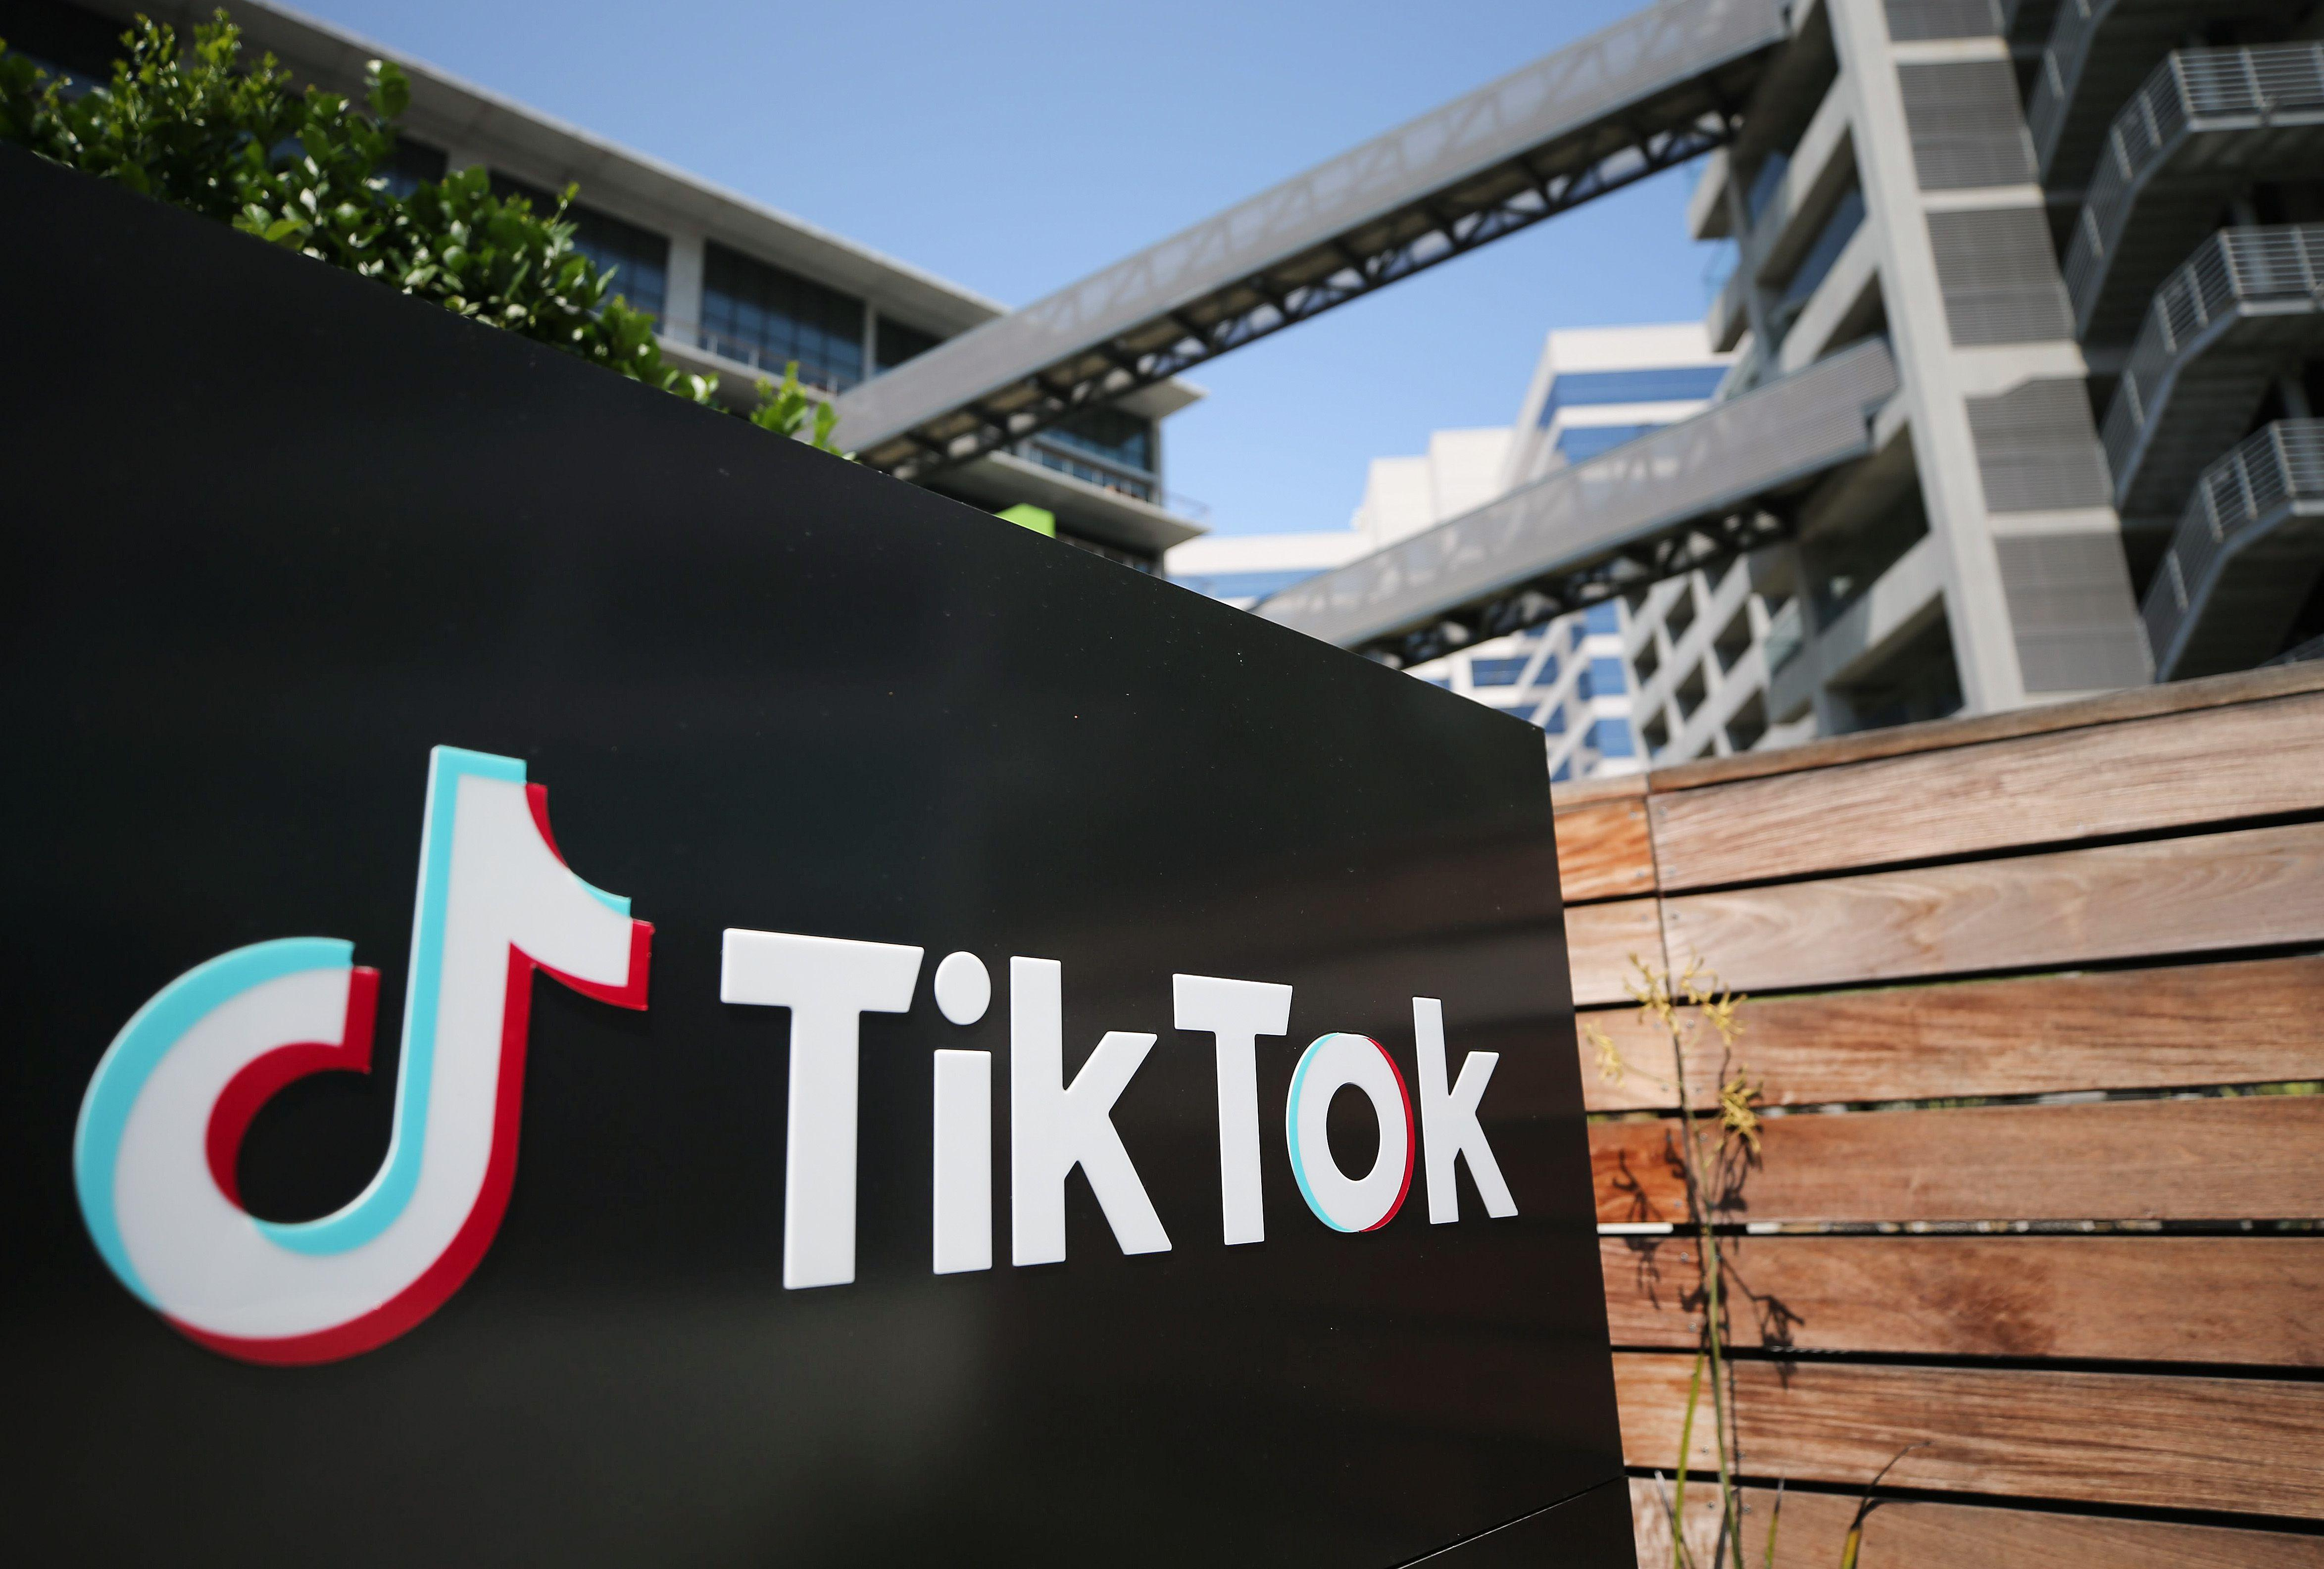 TikTok is owned by Chinese company ByteDance.